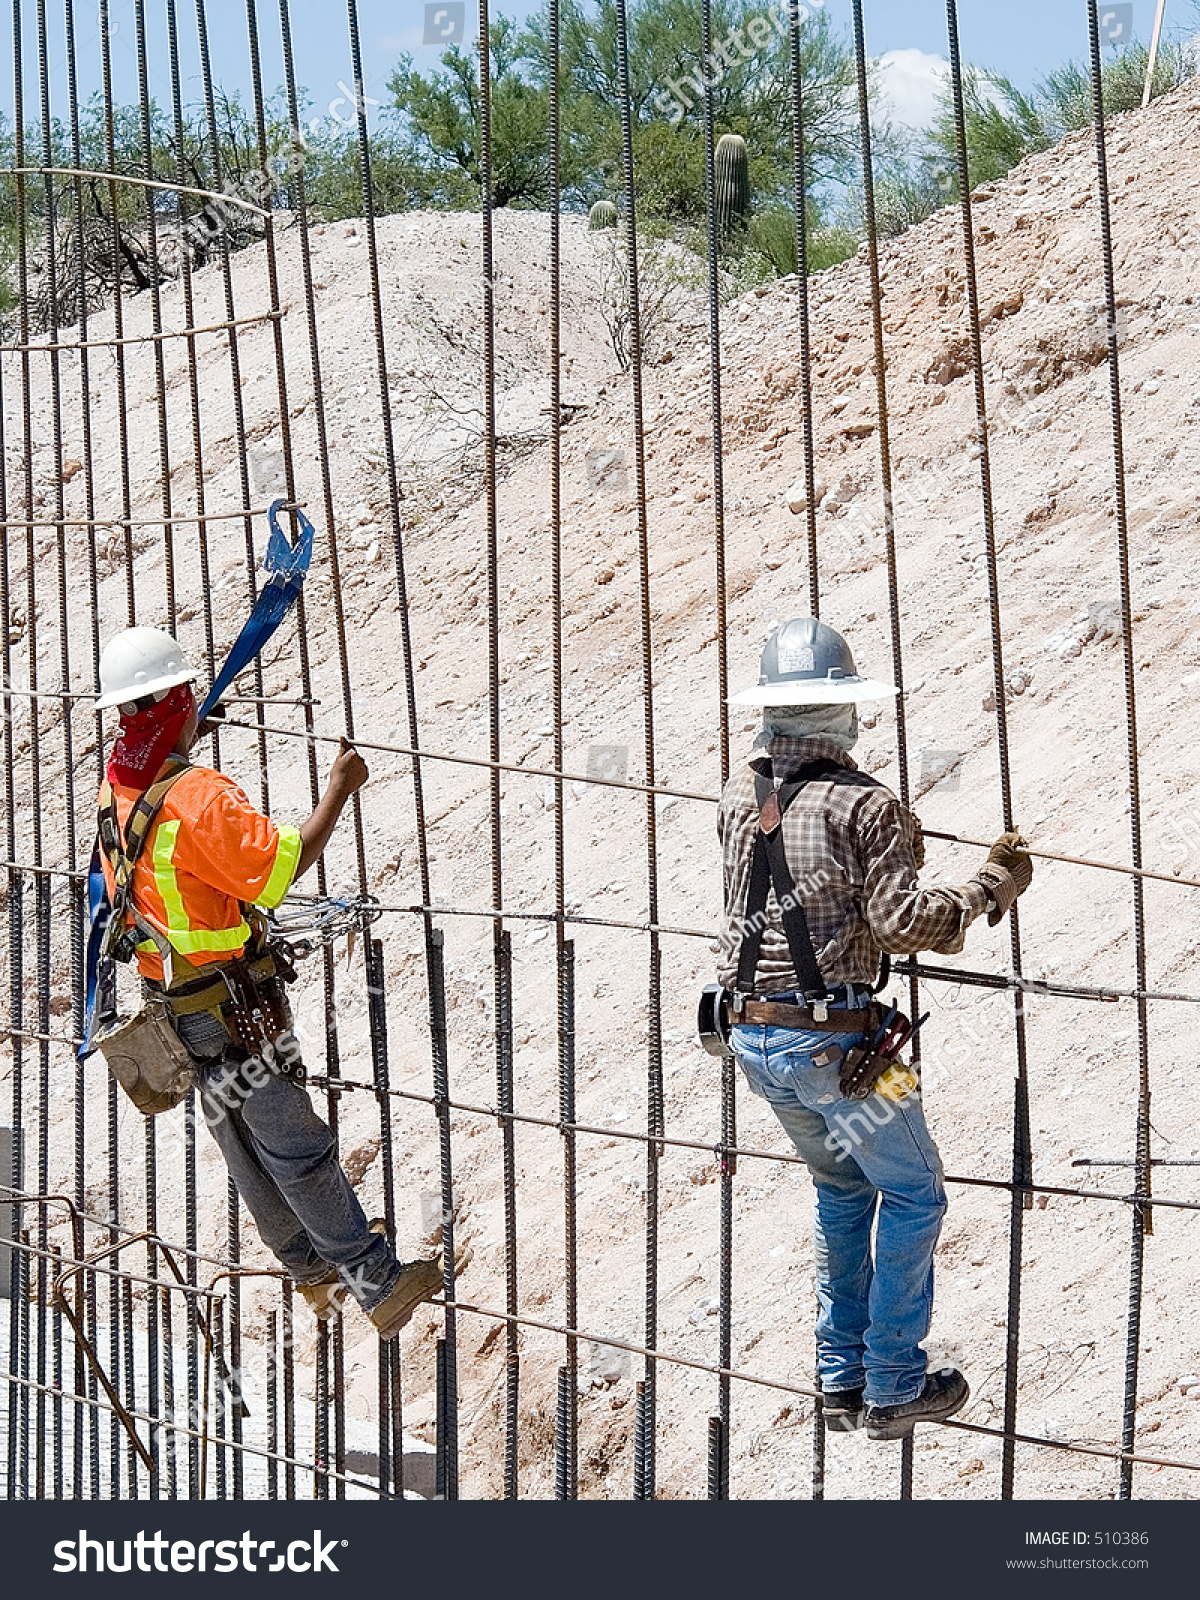 construction workers tying rebar for concrete reinforcement on a road construction project rebar worker